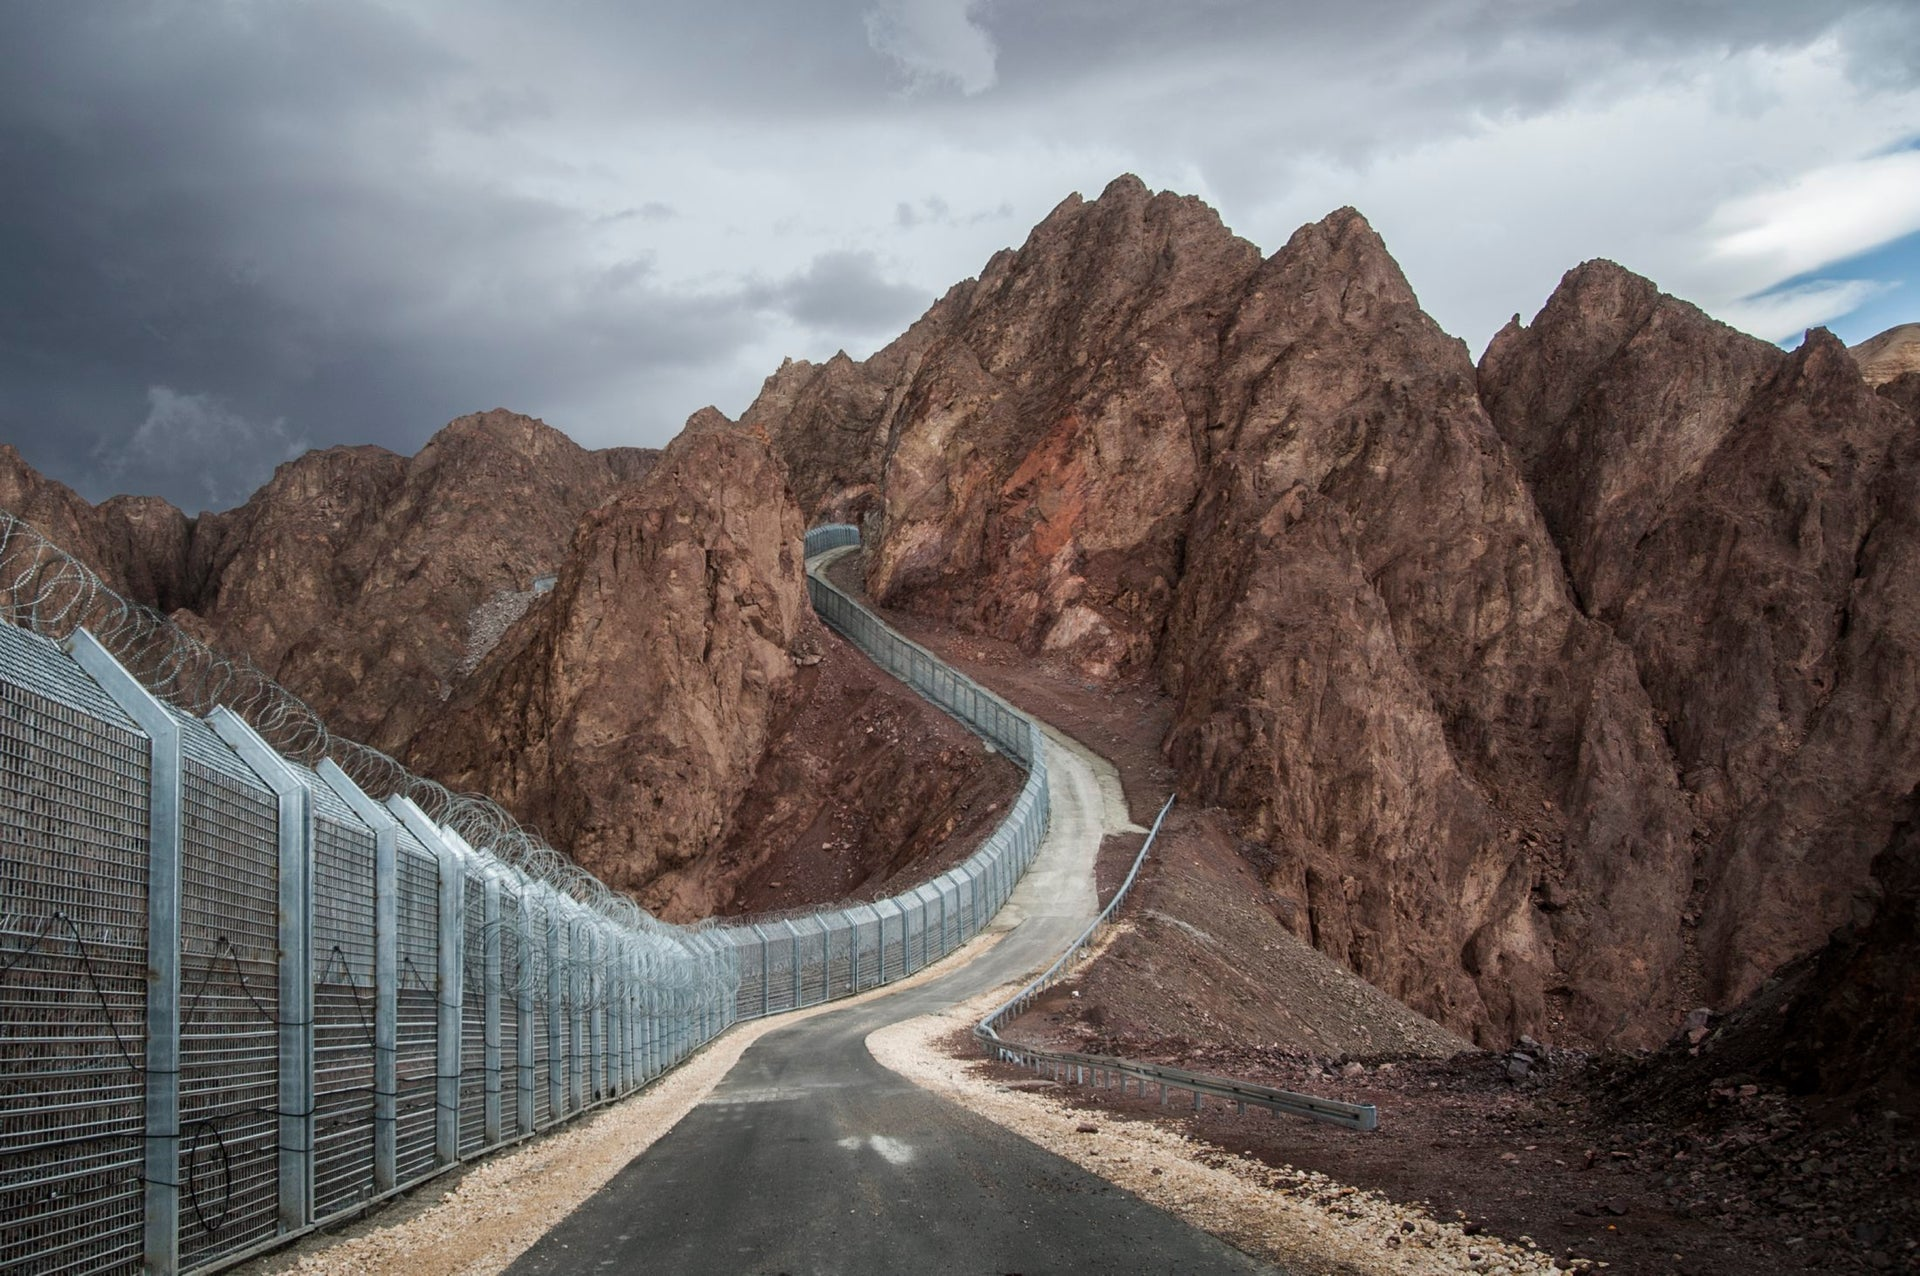 The new border fence between Israel and Egypt, Eilat Mountains, May 2014 (First Prize in Conflict Between Man and Nature category).